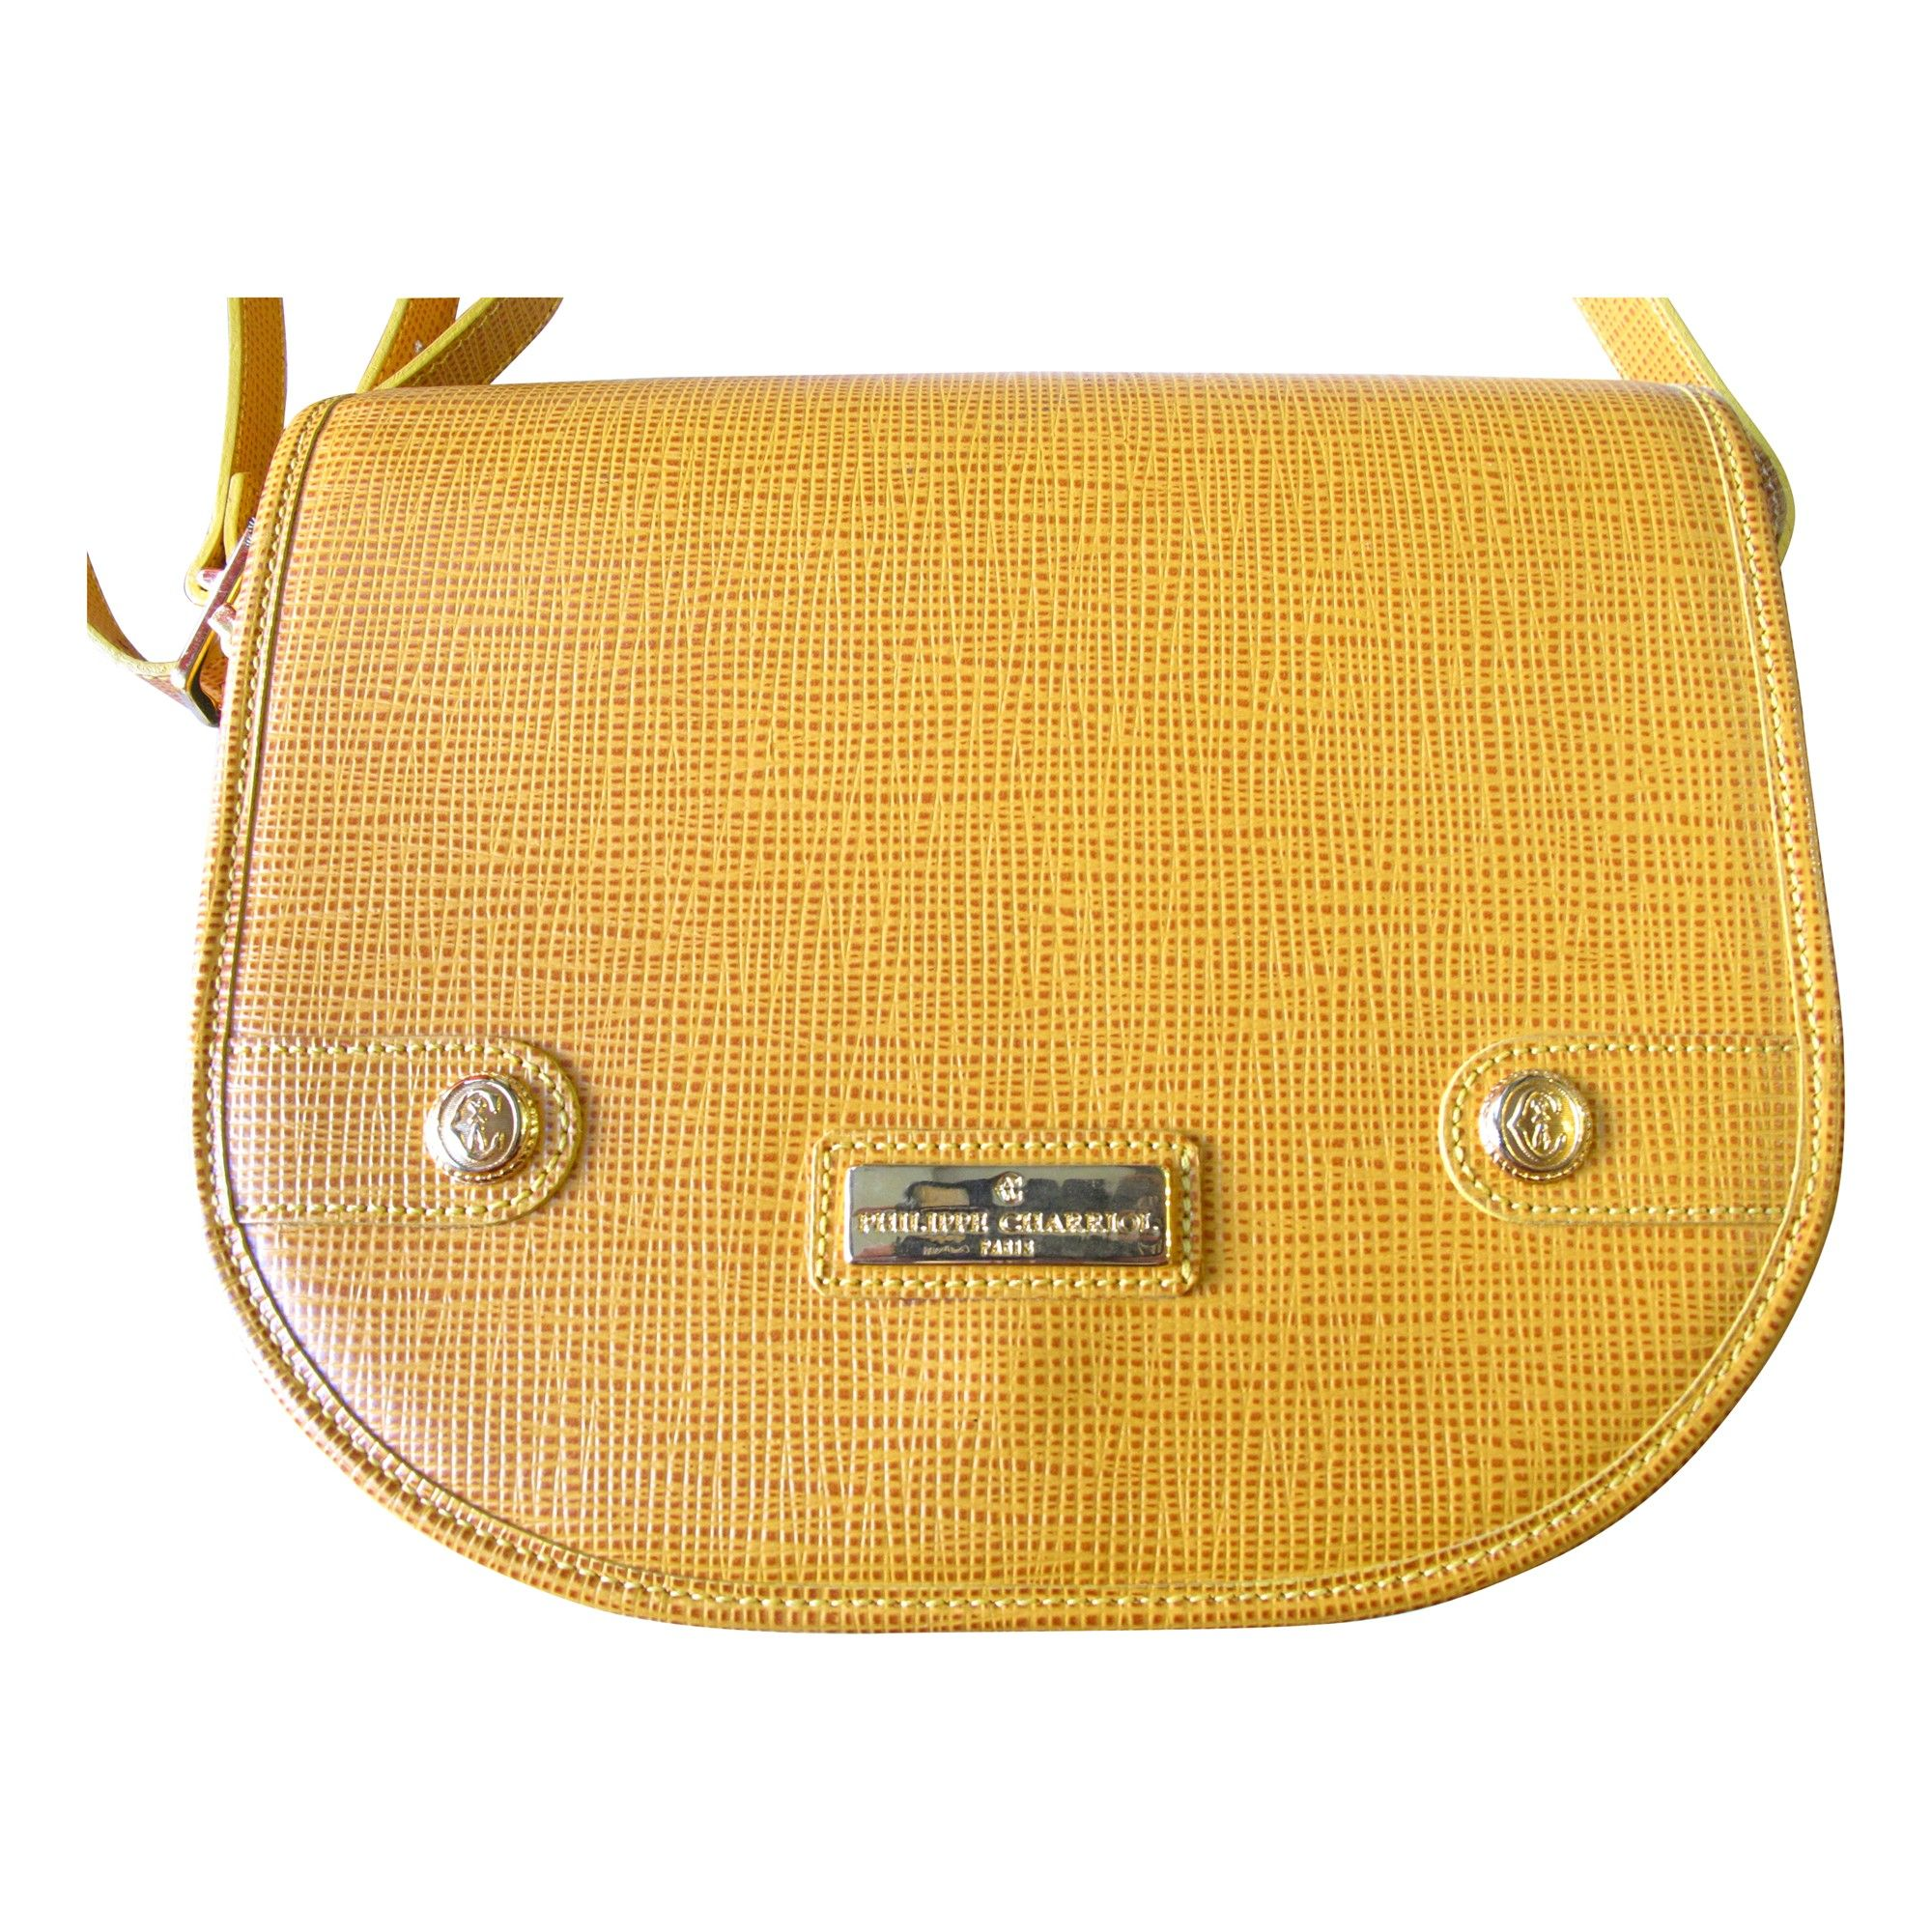 philippe charriol yellow leather shoulder bag